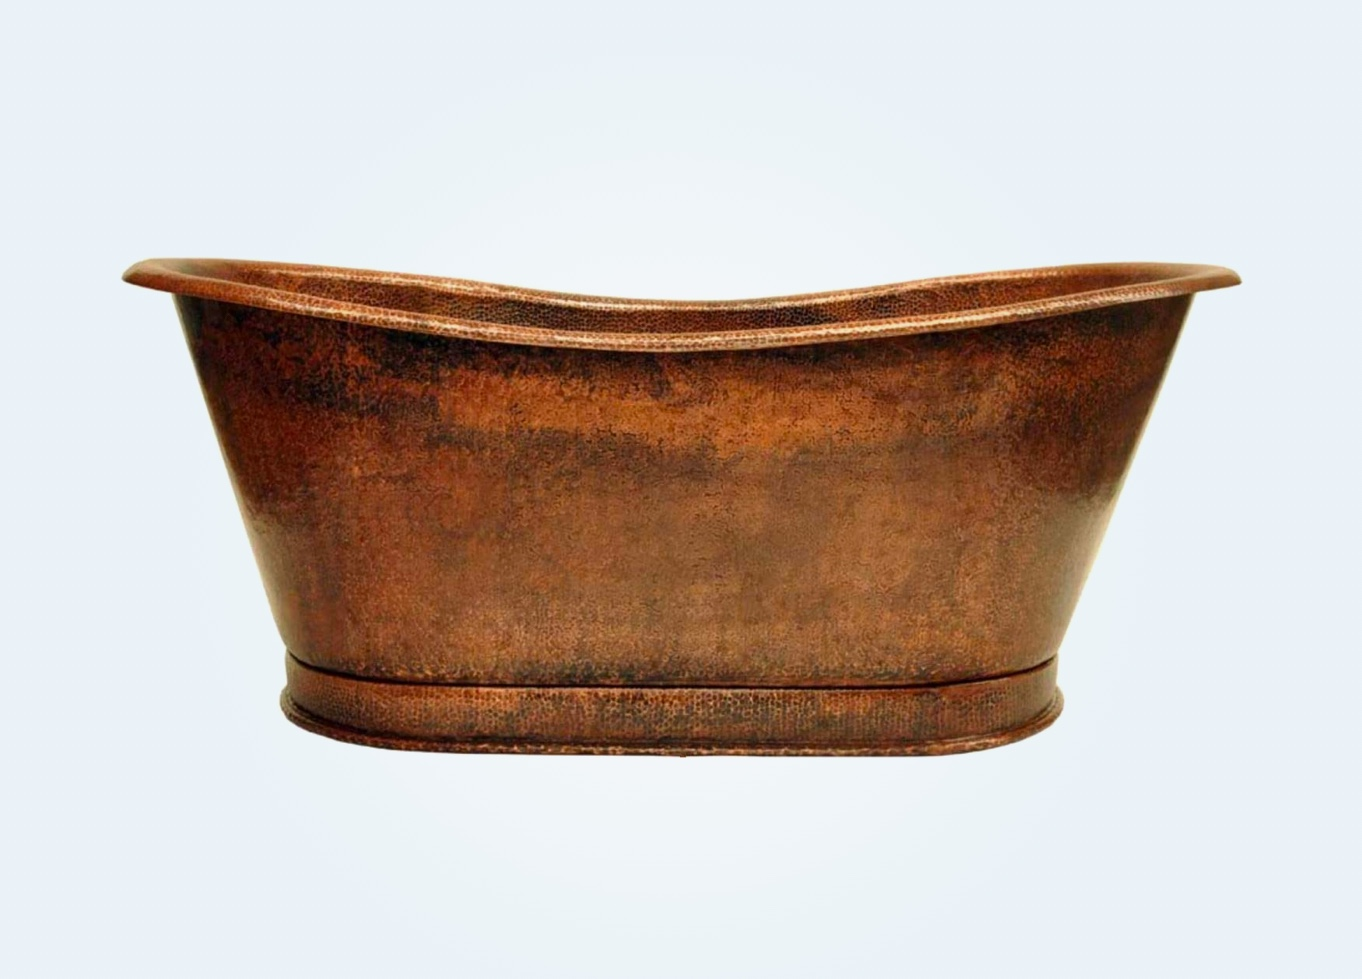 double-slipper-genuine-copper-bathtub-freestanding-design-for-rustic-and-traditional-bathroom-themes